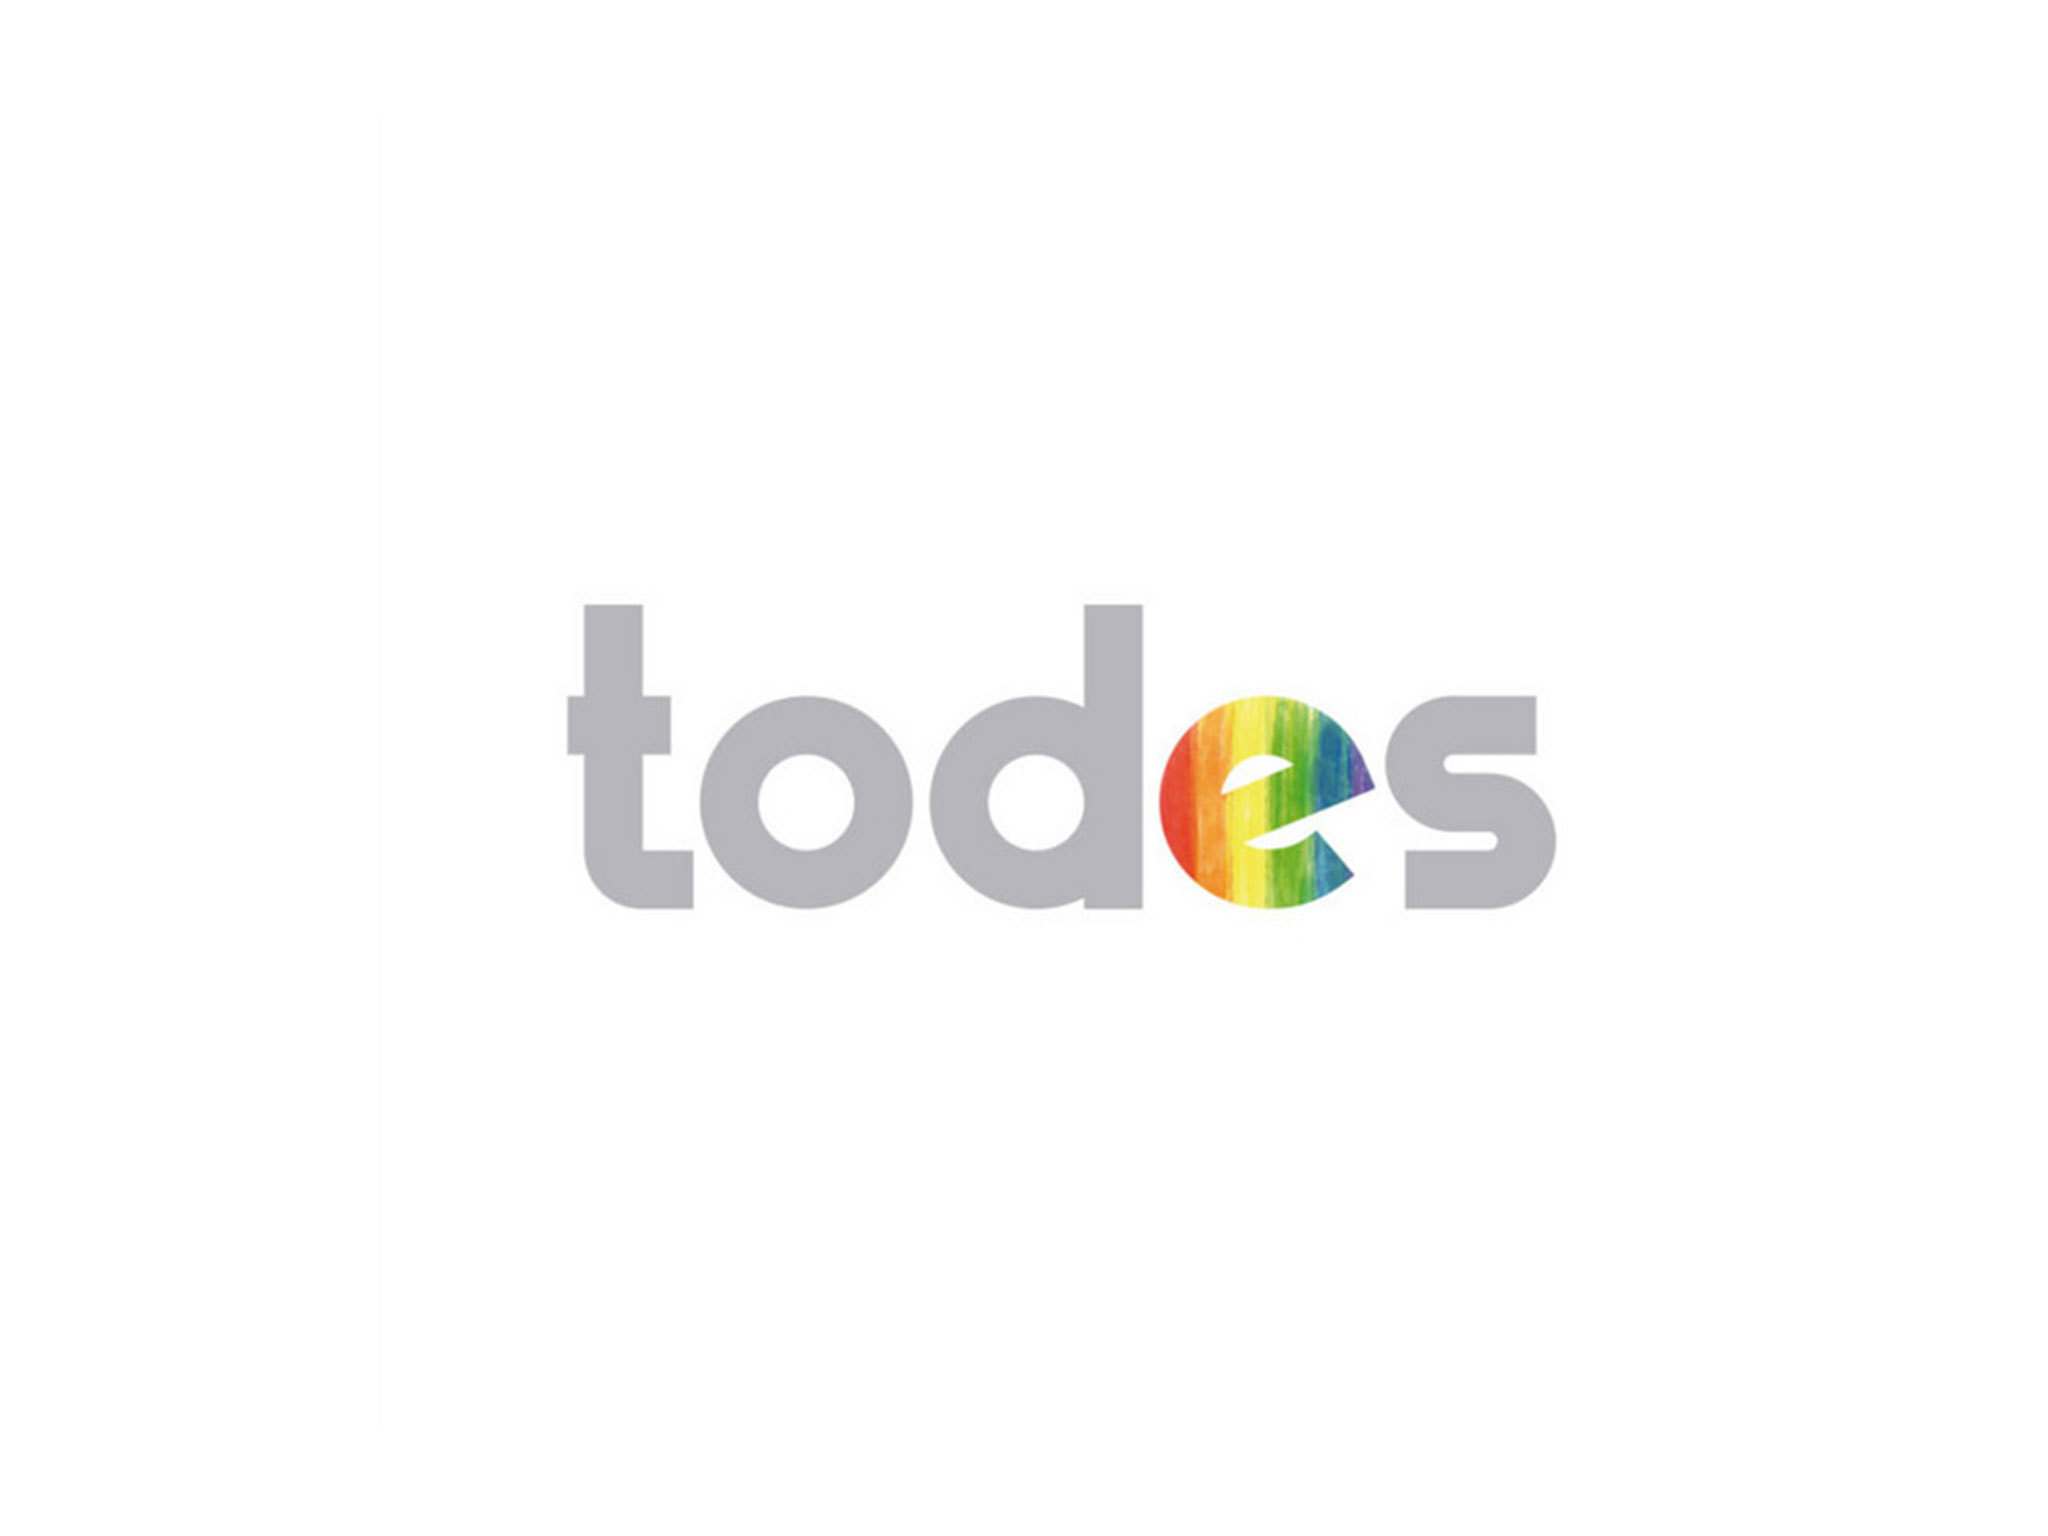 Todes podcast